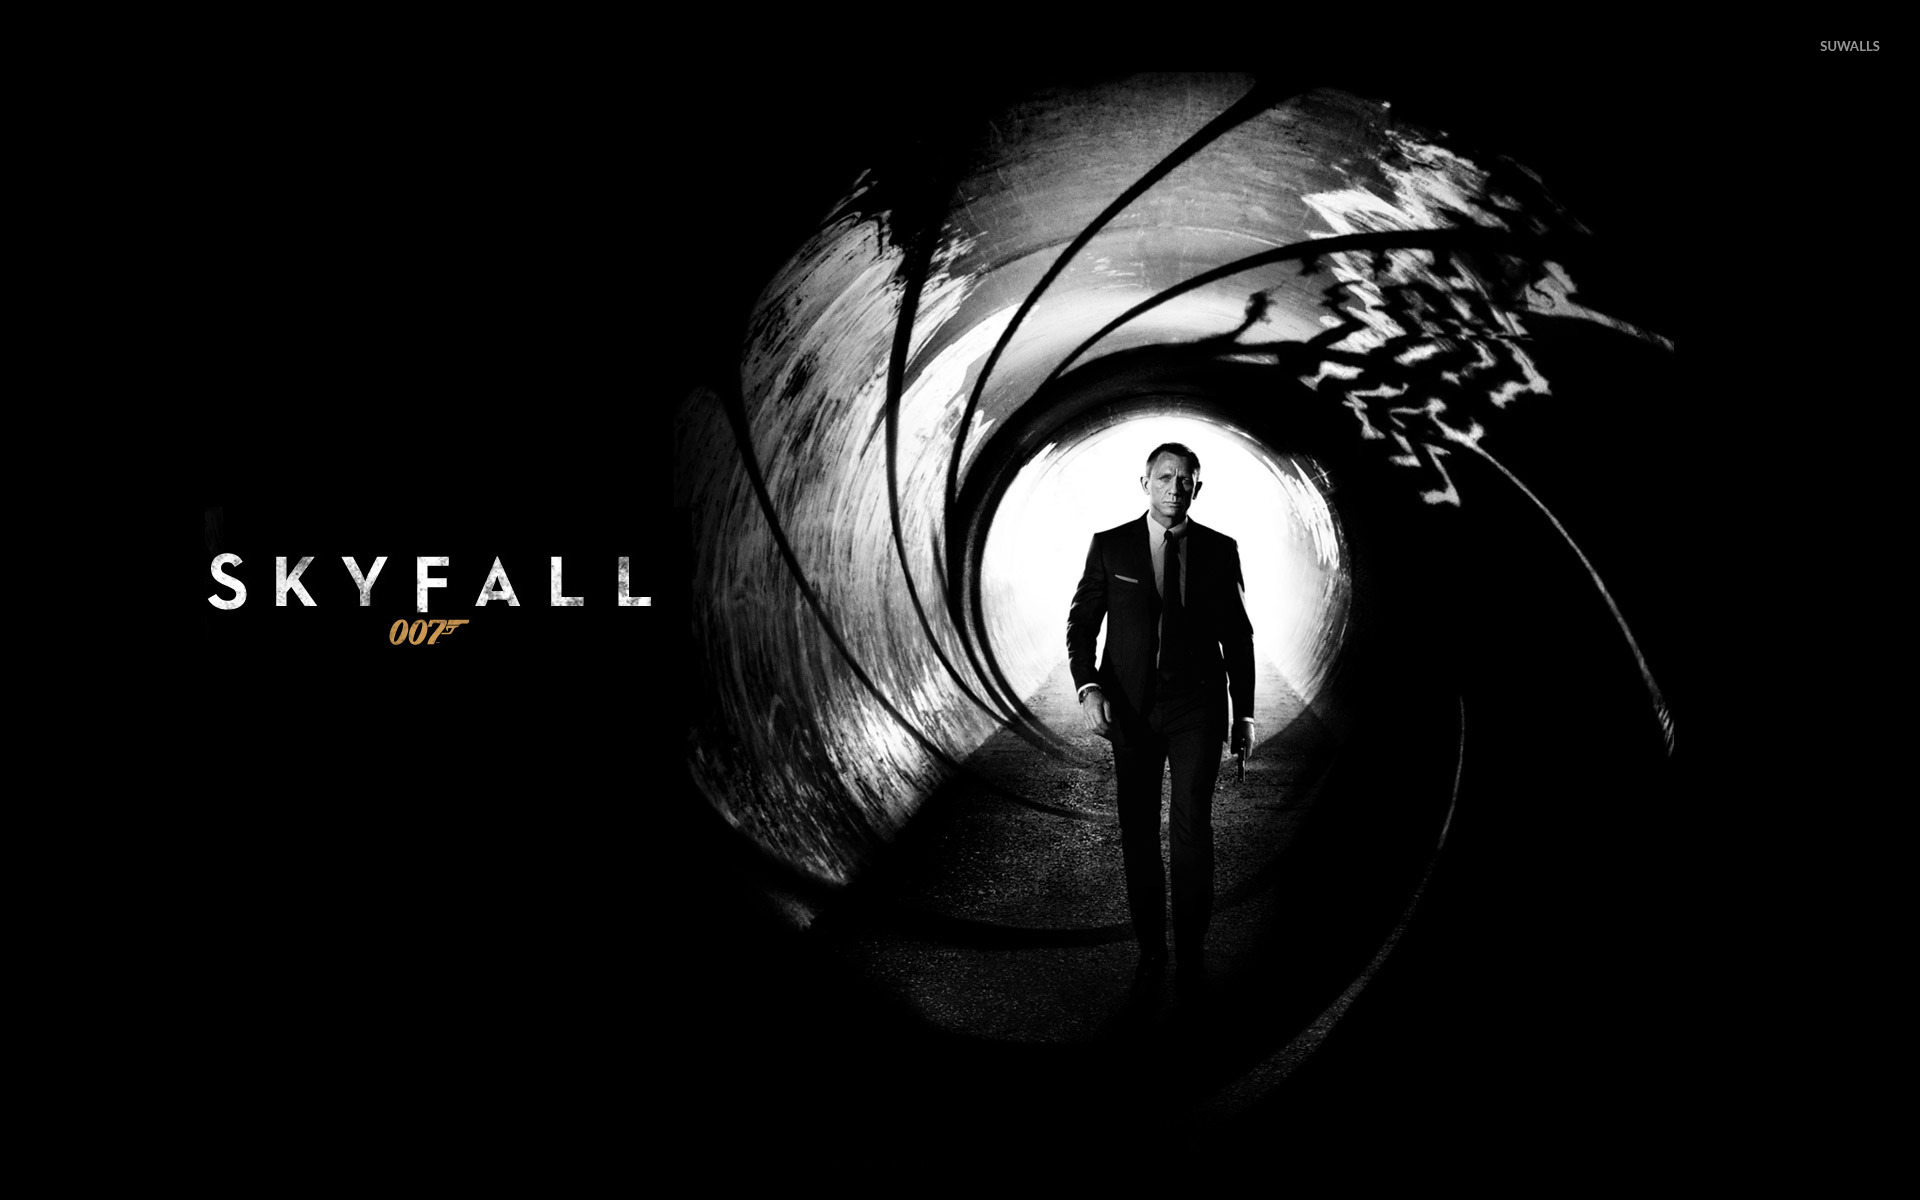 james bond - skyfall wallpaper - movie wallpapers - #14237